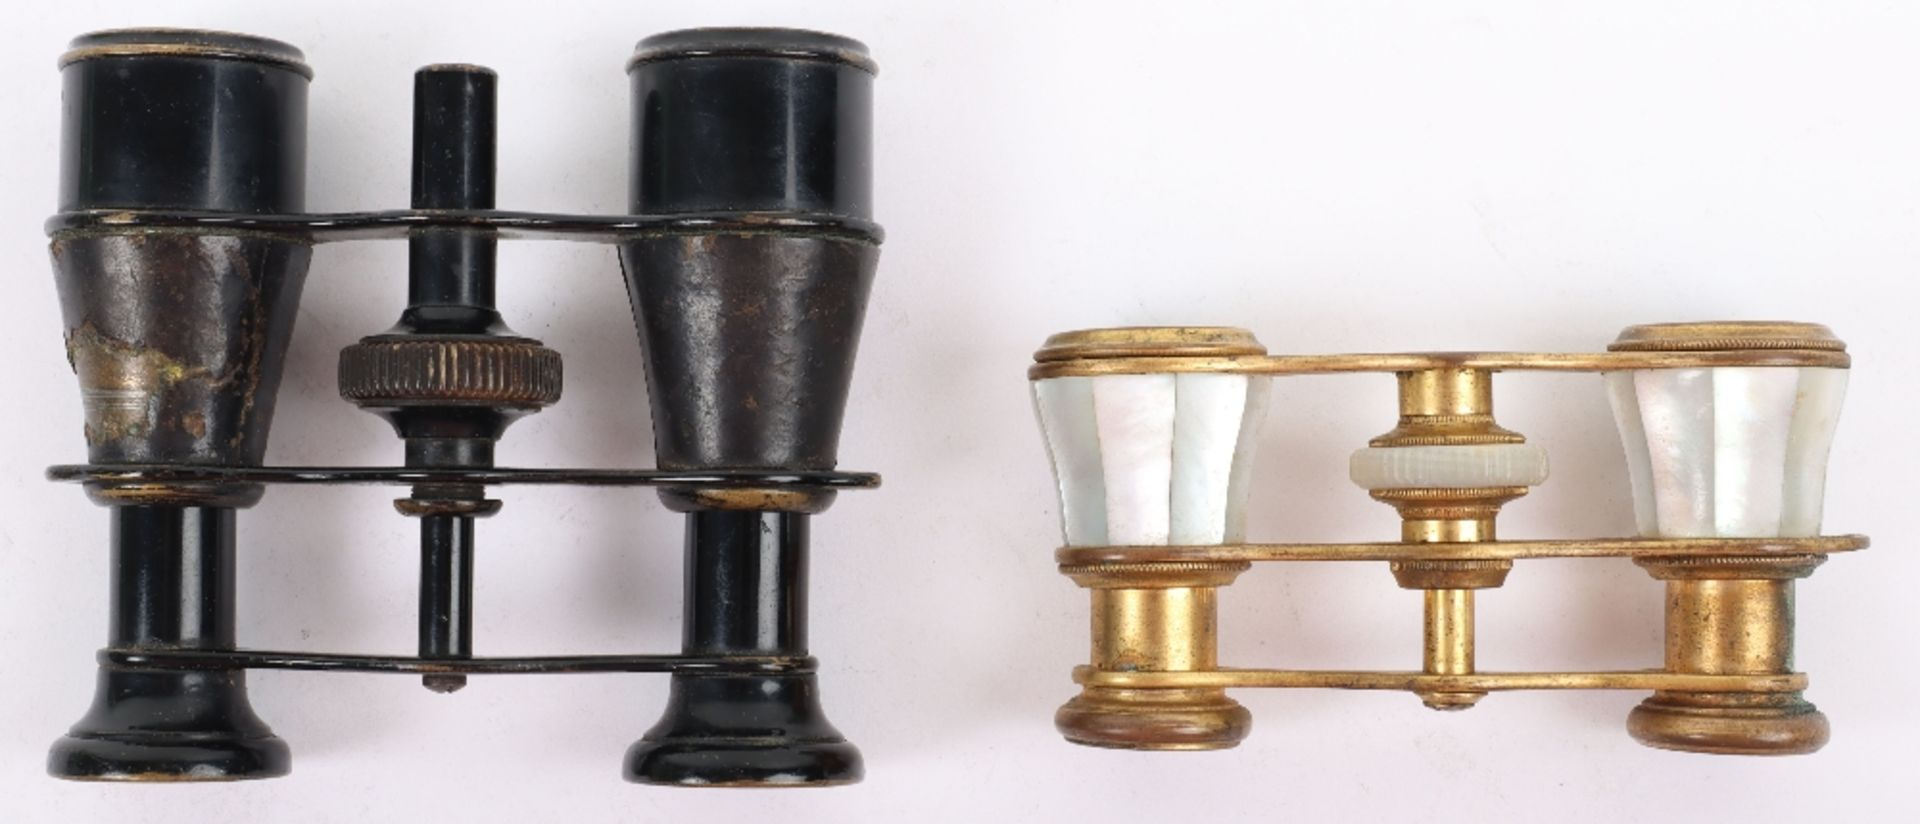 Two pairs of opera glasses